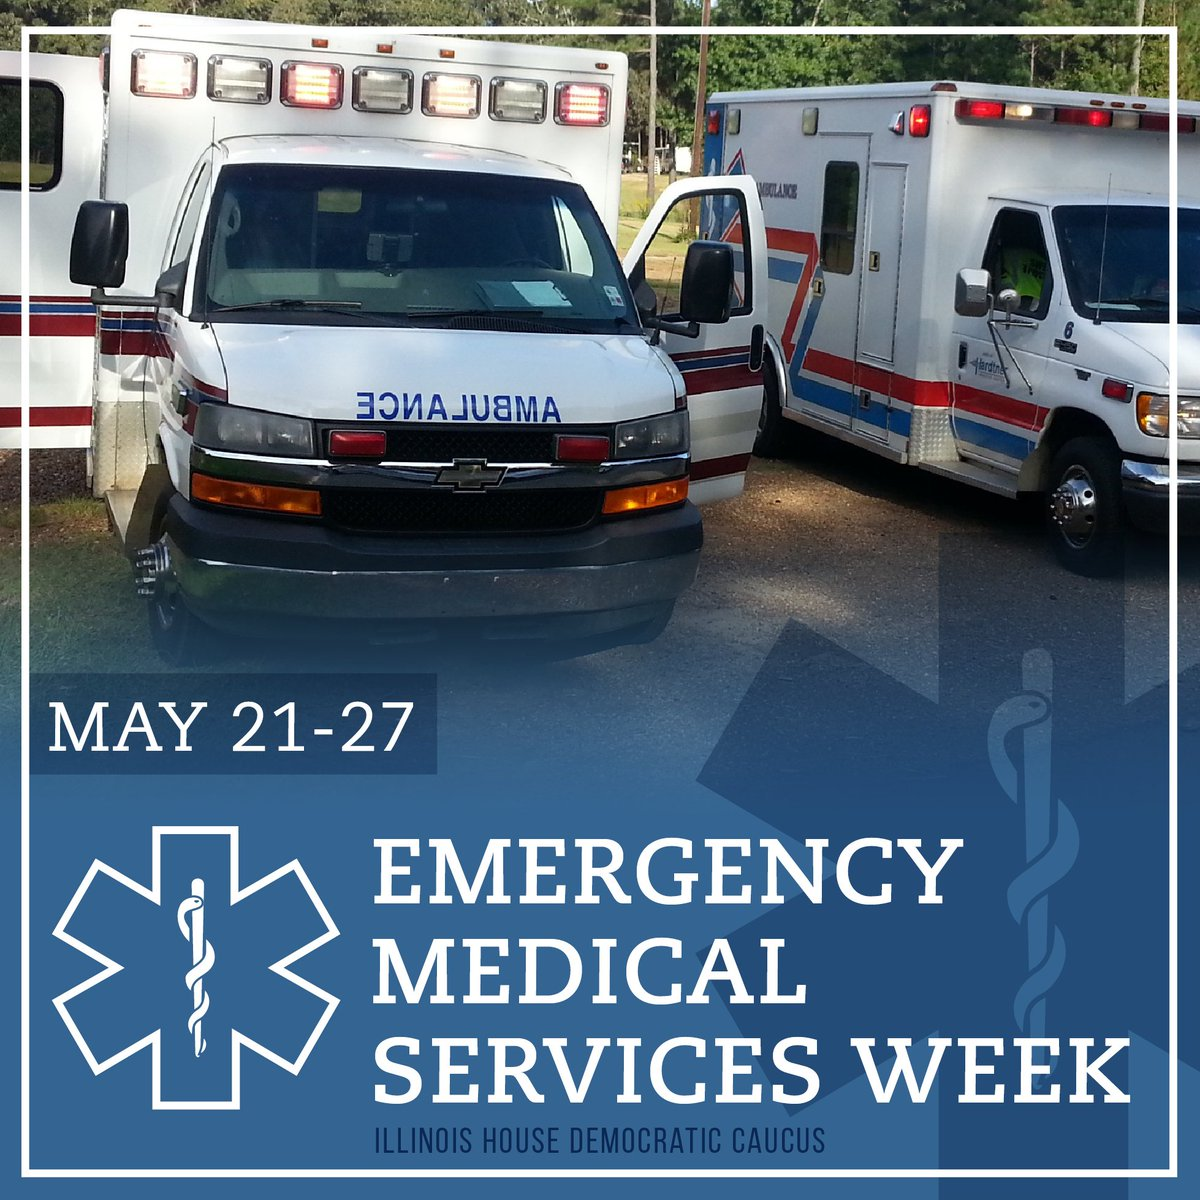 test Twitter Media - The assistance EMTs provide saves many lives throughout our state every year. RT to show your appreciation. #EMSWeek https://t.co/0mXaHkI90t